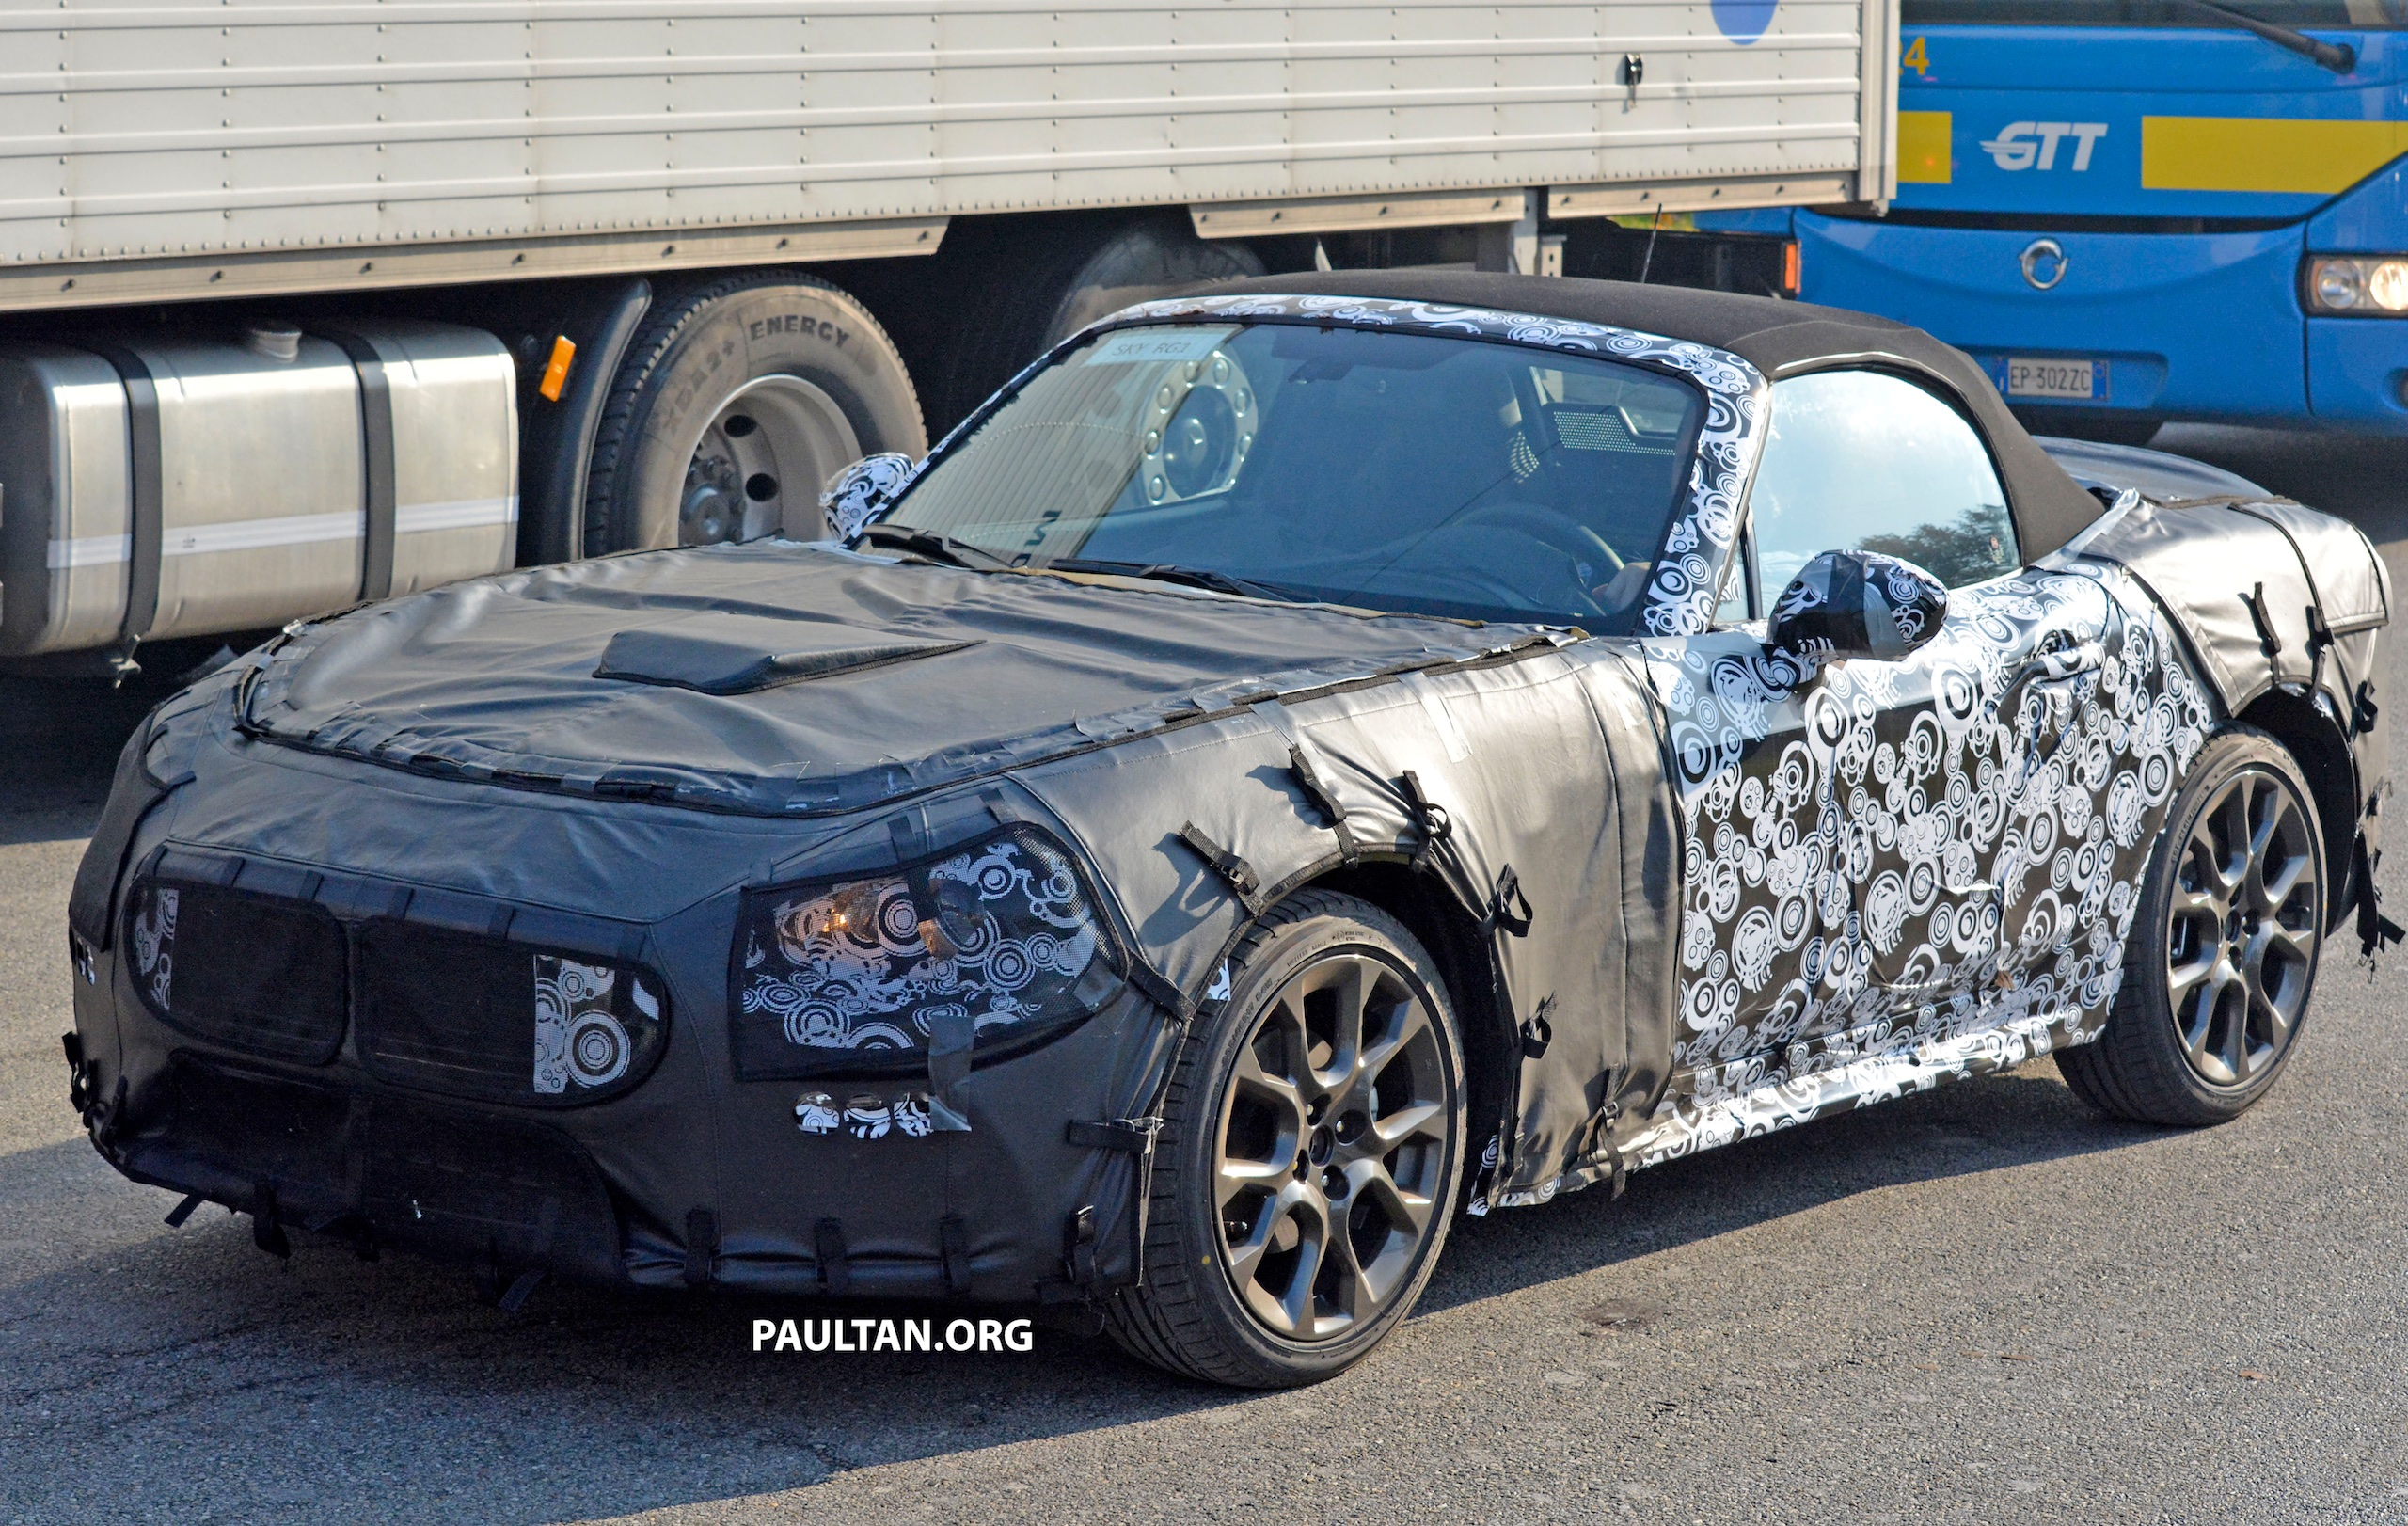 coupe spider considering fiat rally fixed roof report hardtop variant abarth news the of